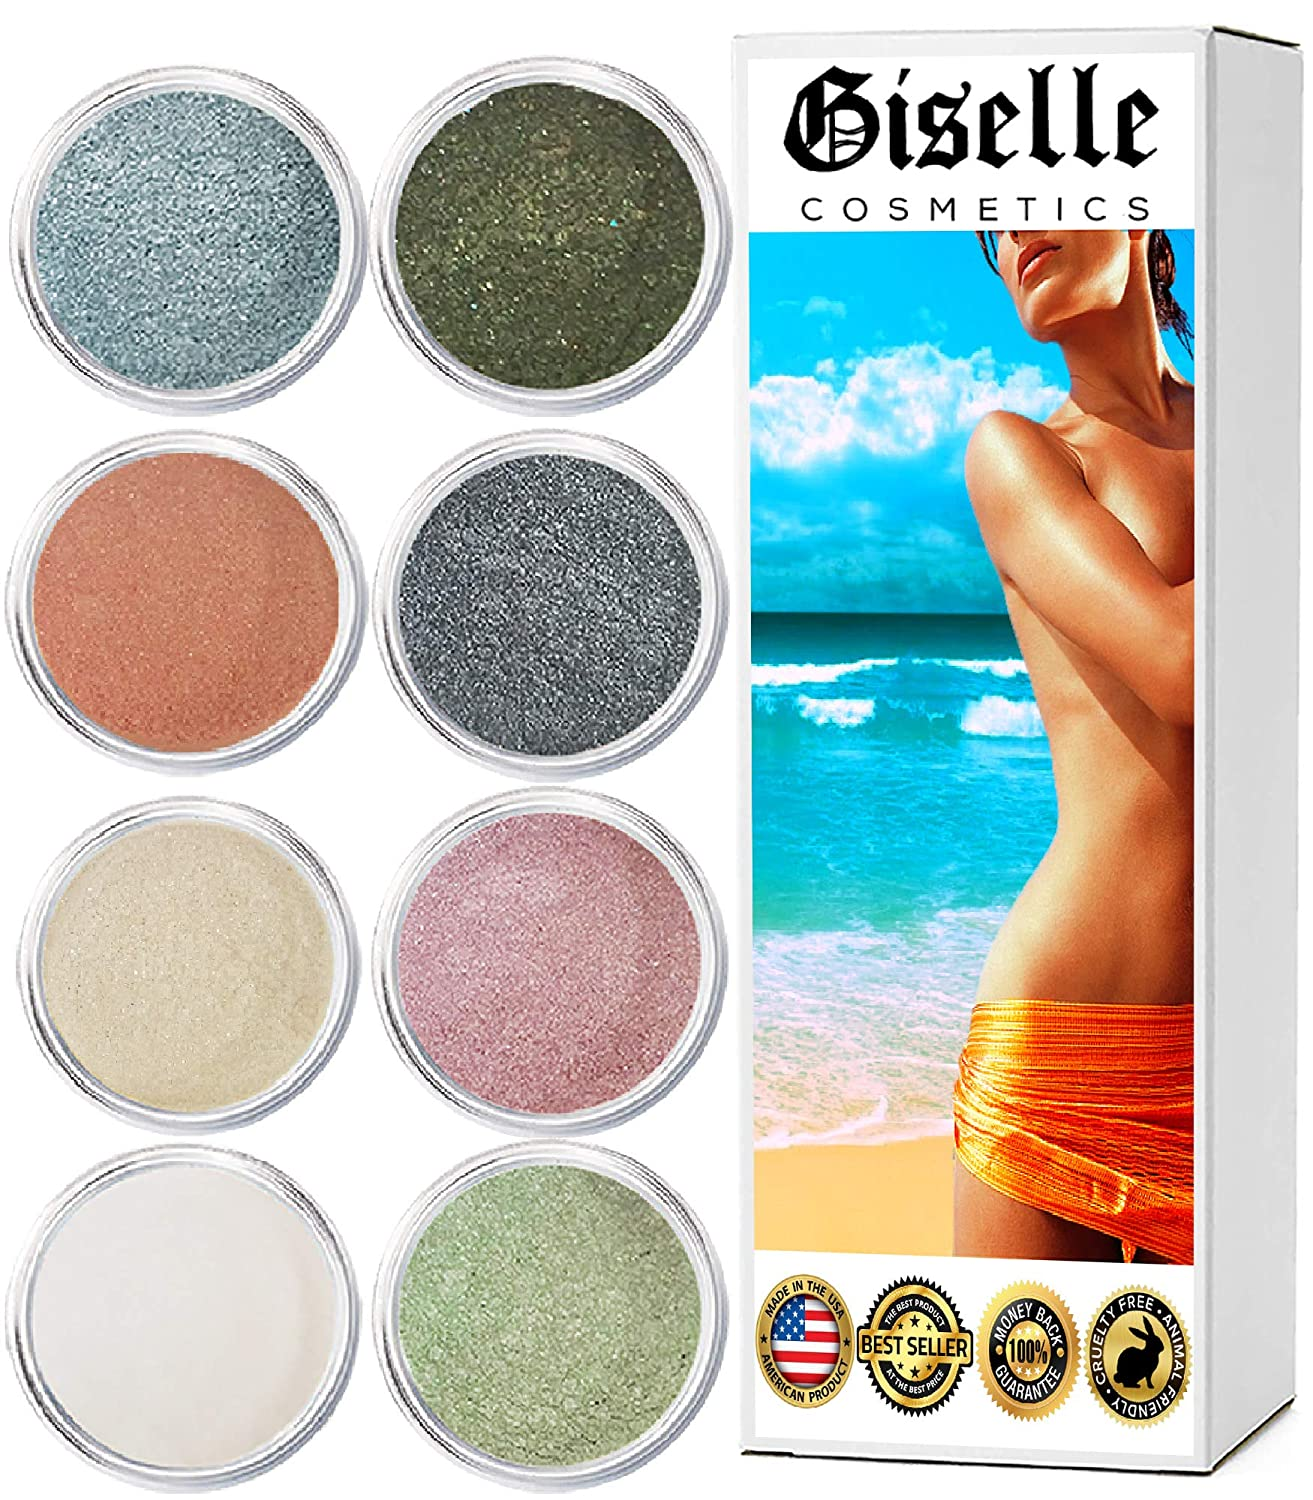 Mineral Loose Powder Makeup Eyeshadow Palette Kit | Pure Organic Natural Pigment Minerals | Everyday Foundation, Concealer, Blush, Eye Shadow, and Contouring Palettes 8 Baby Doll Color, Hues, Shades